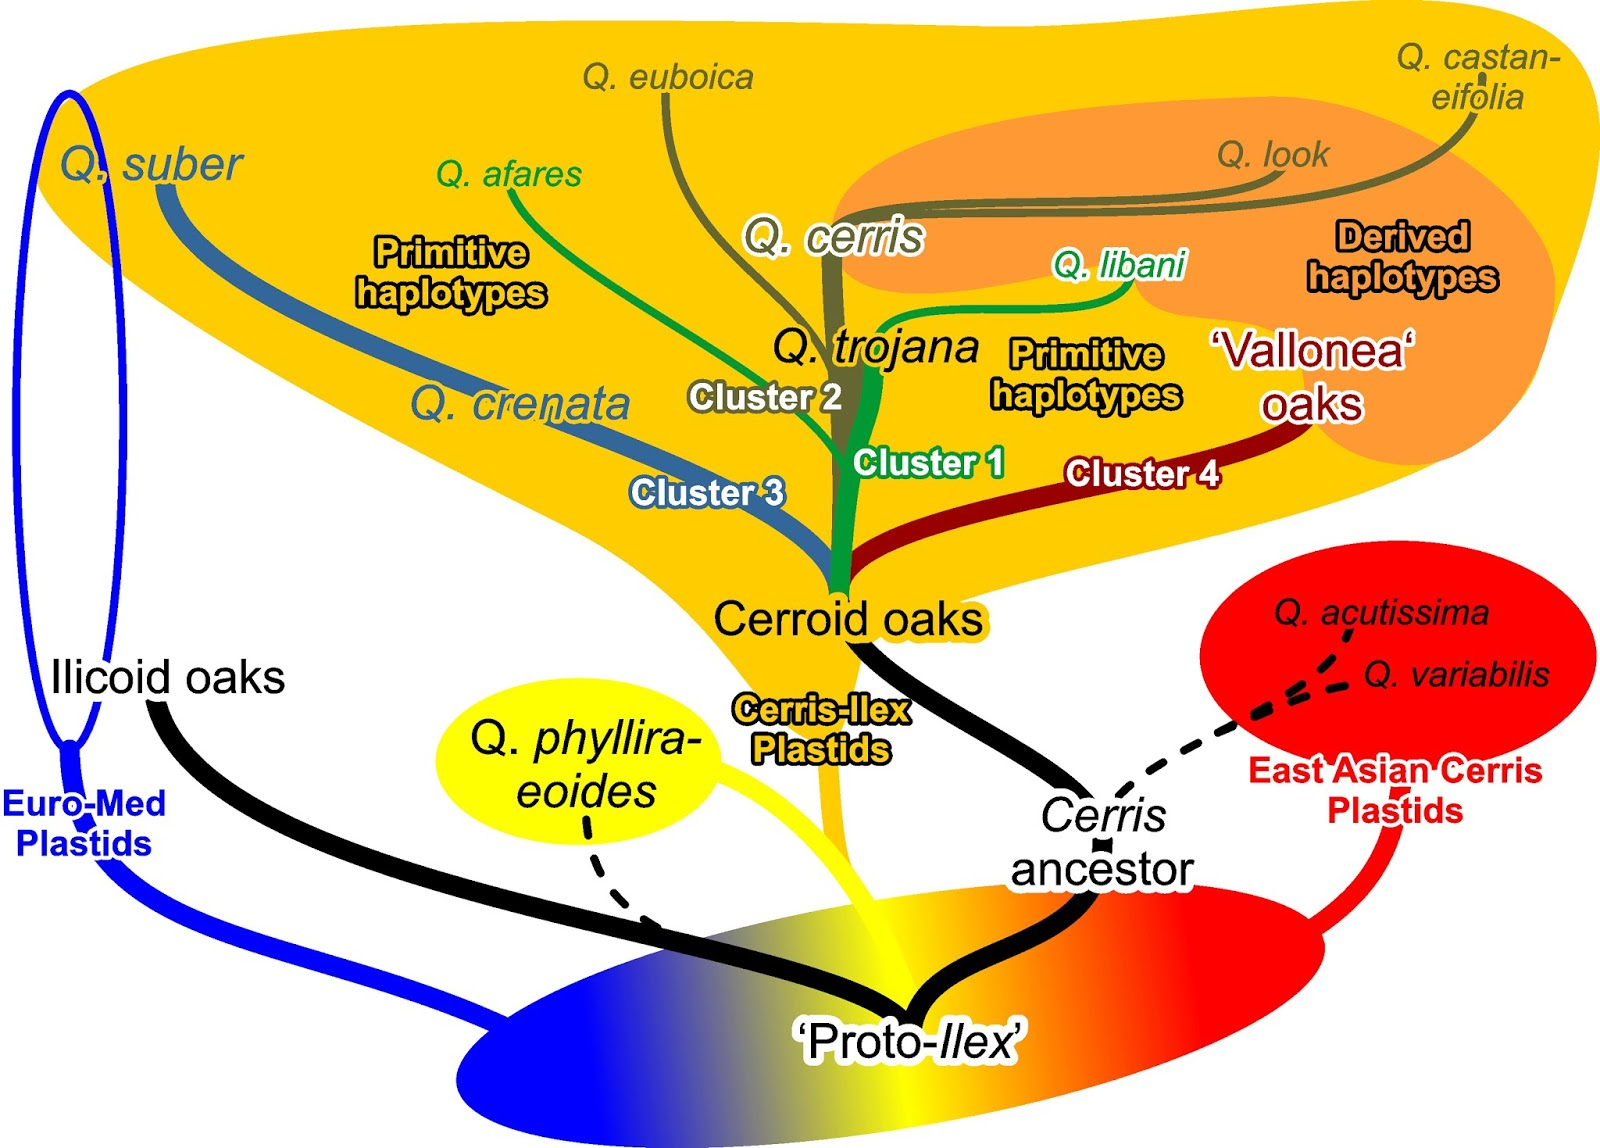 a cactus oak fusion graph depicting nuclear and plastid differentiation and evolution in quercus group cerris